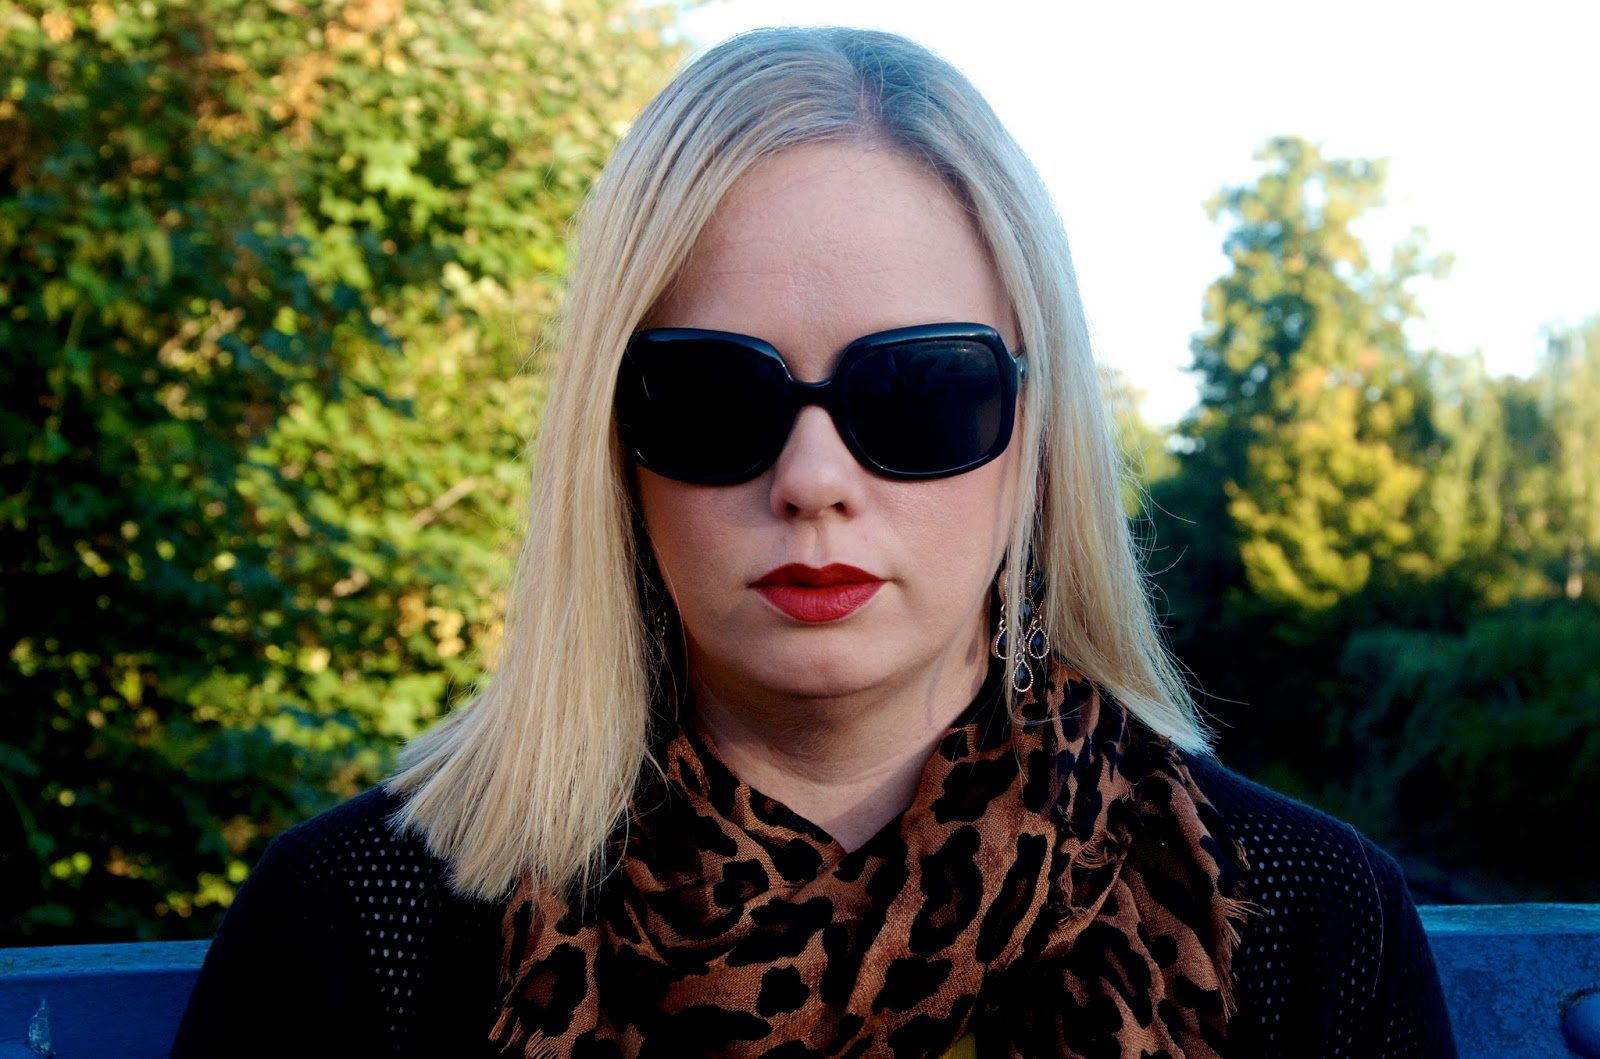 leopard scarf, red lipstick, black sunglasses